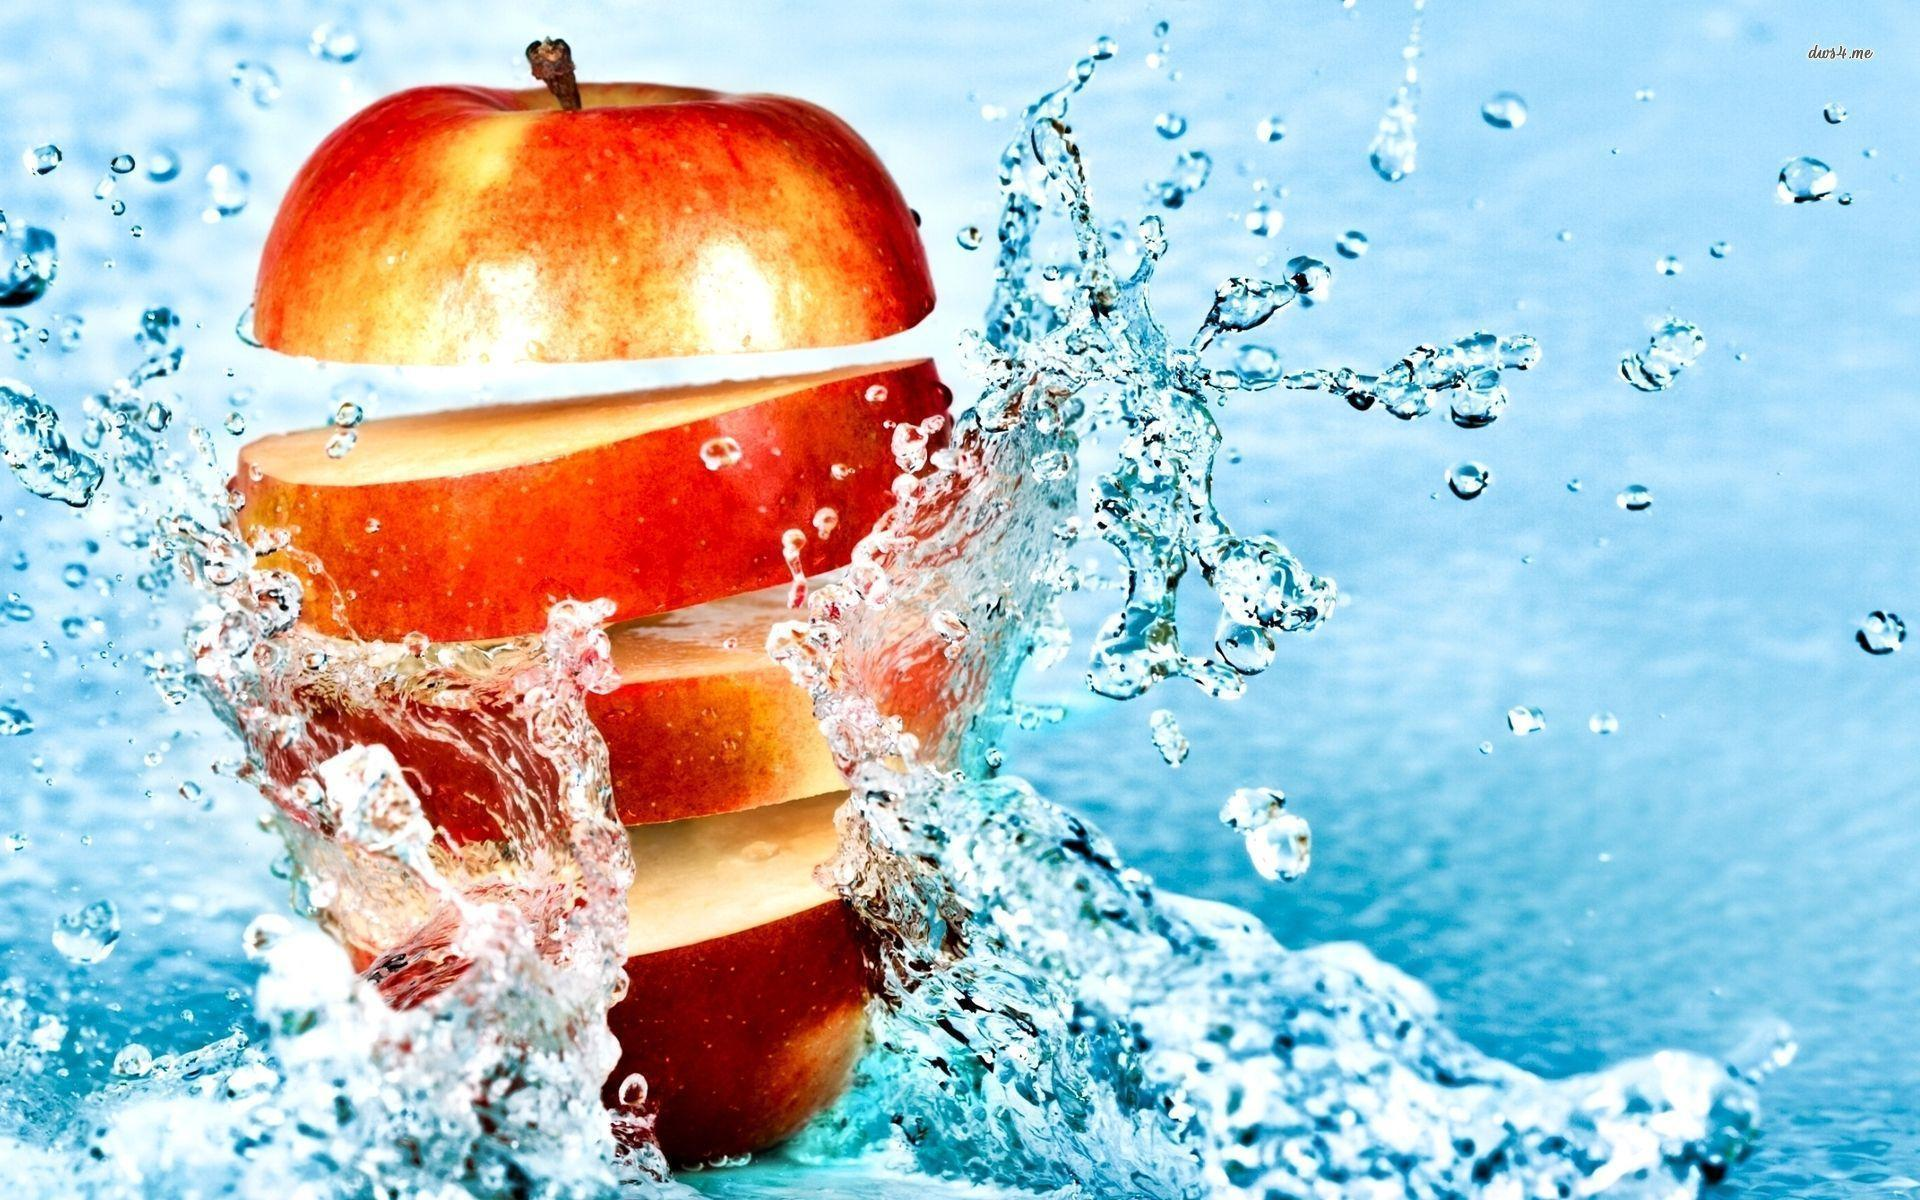 Sliced Apple In The Water Wallpaper